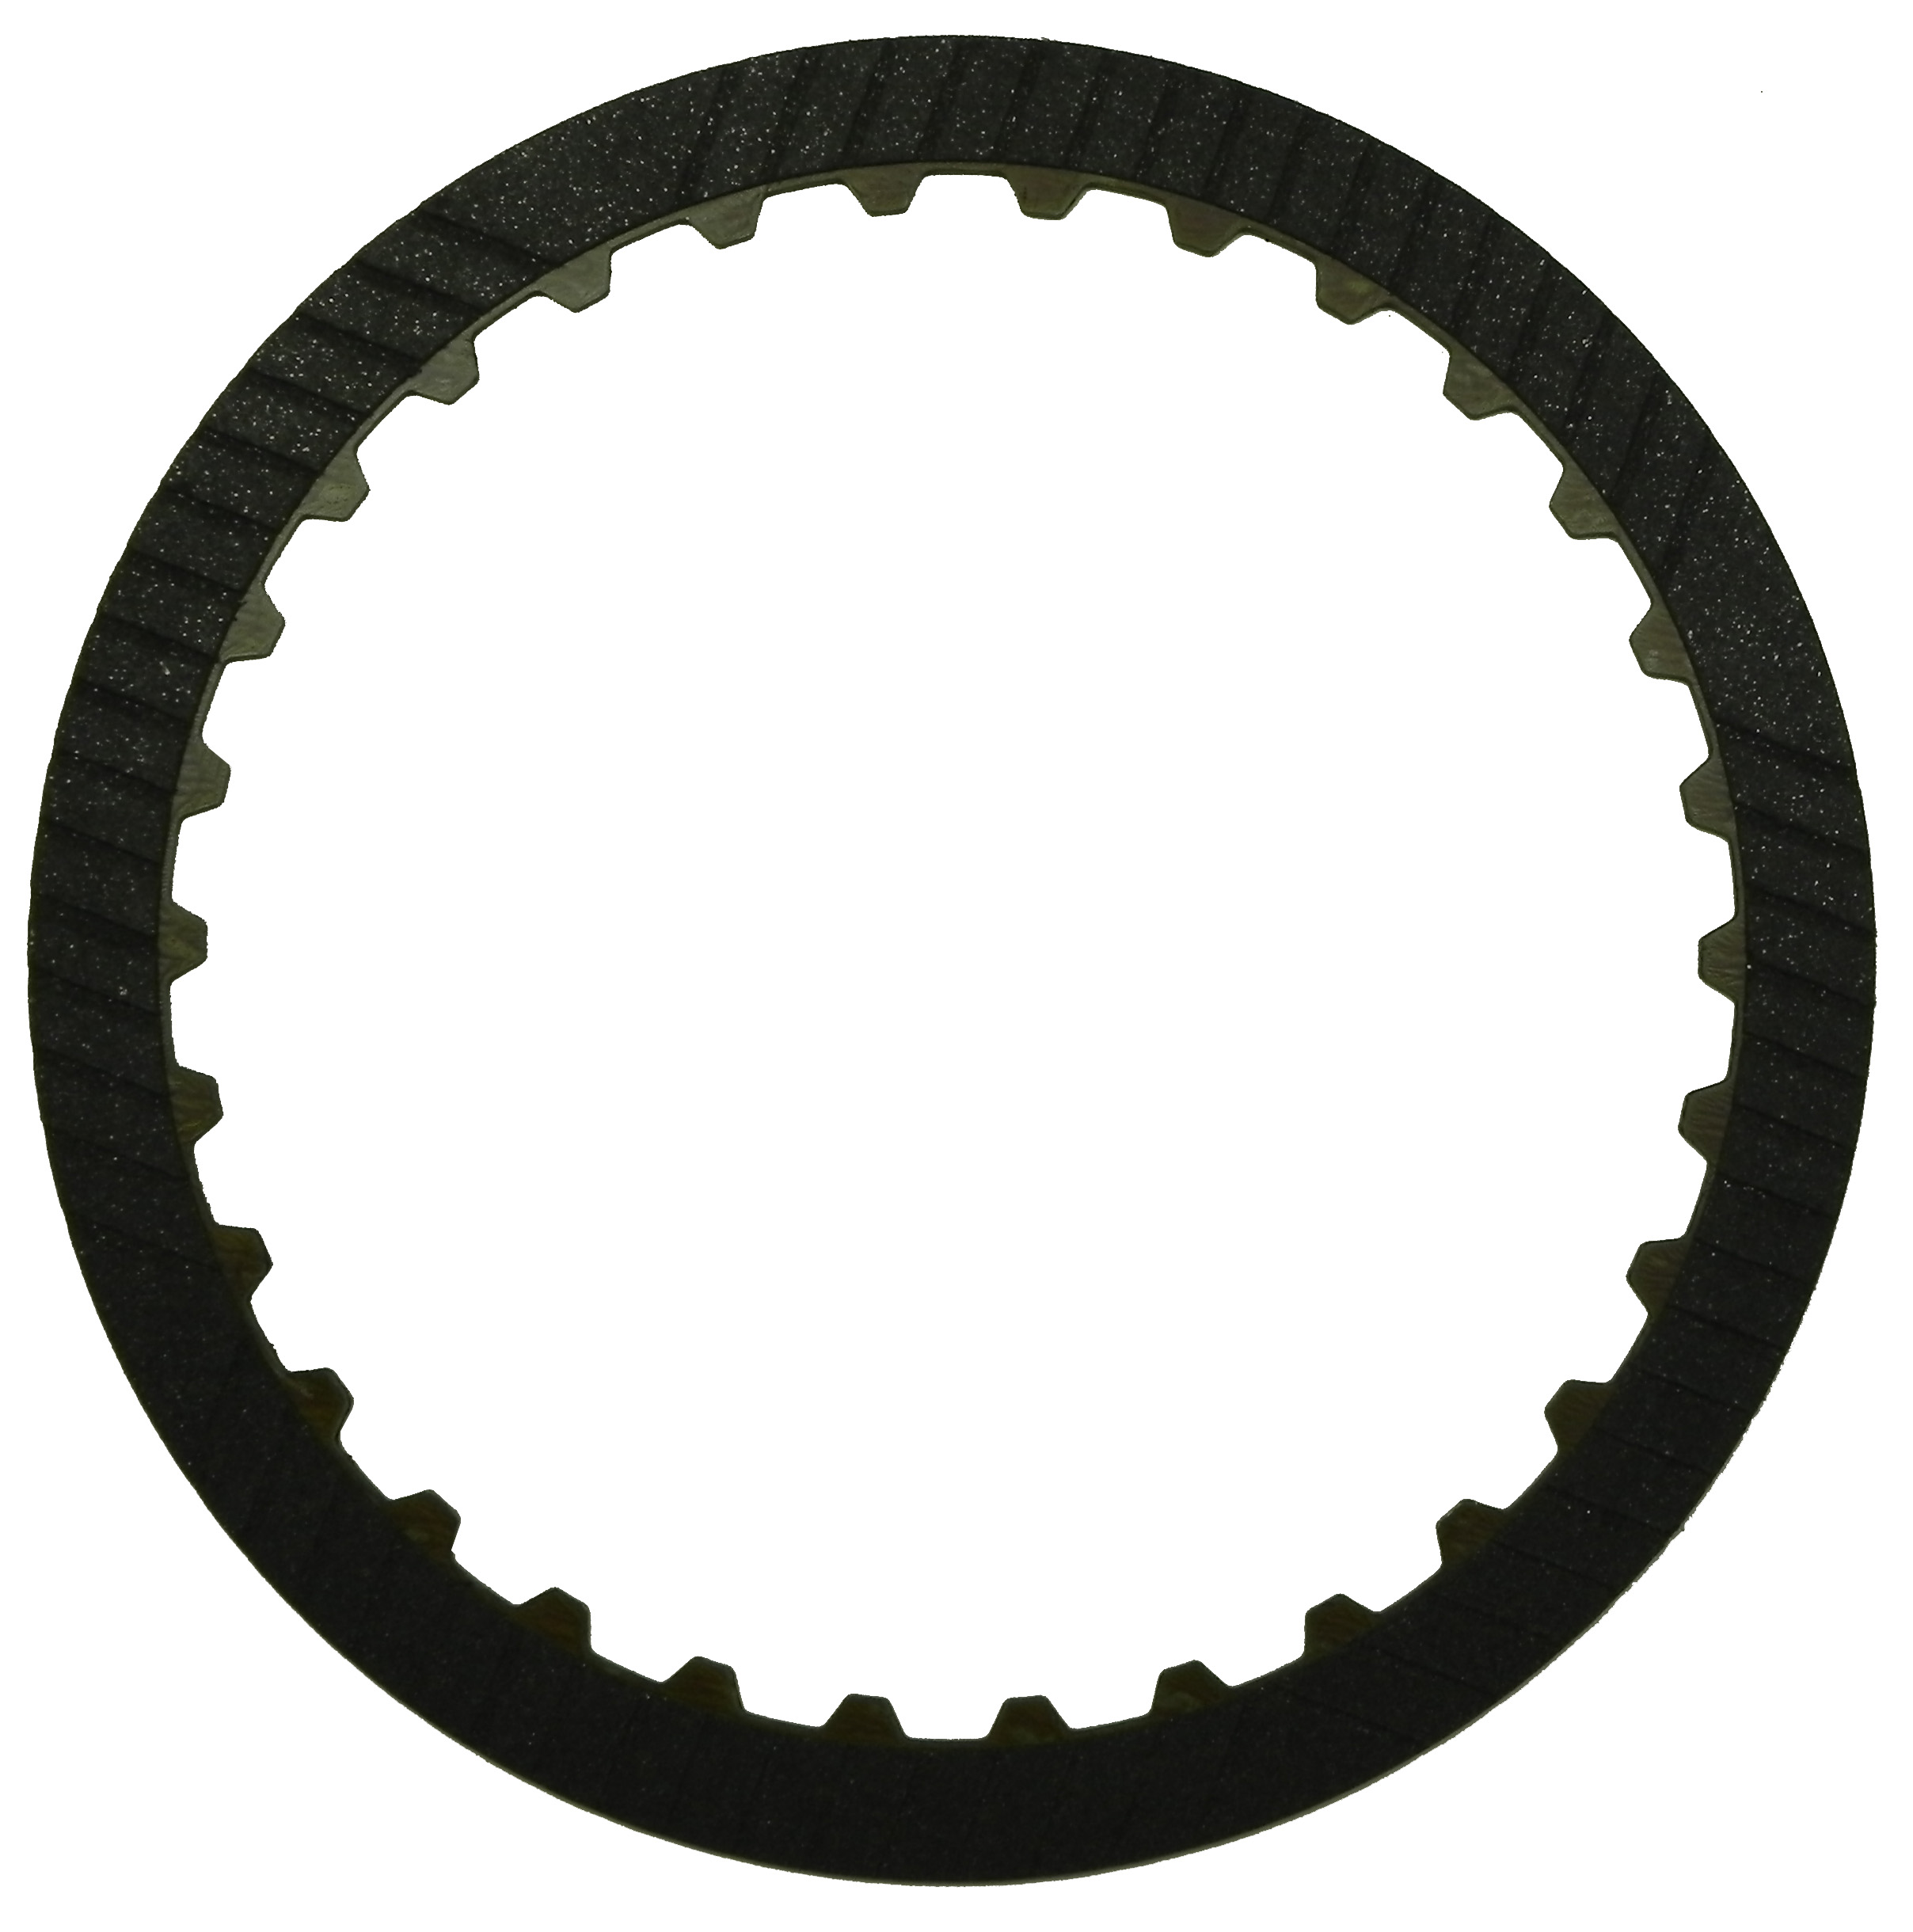 R559790 | 2005-ON Friction Clutch Plate High Energy K1 Clutch Single Sided, ID Spline High Energy